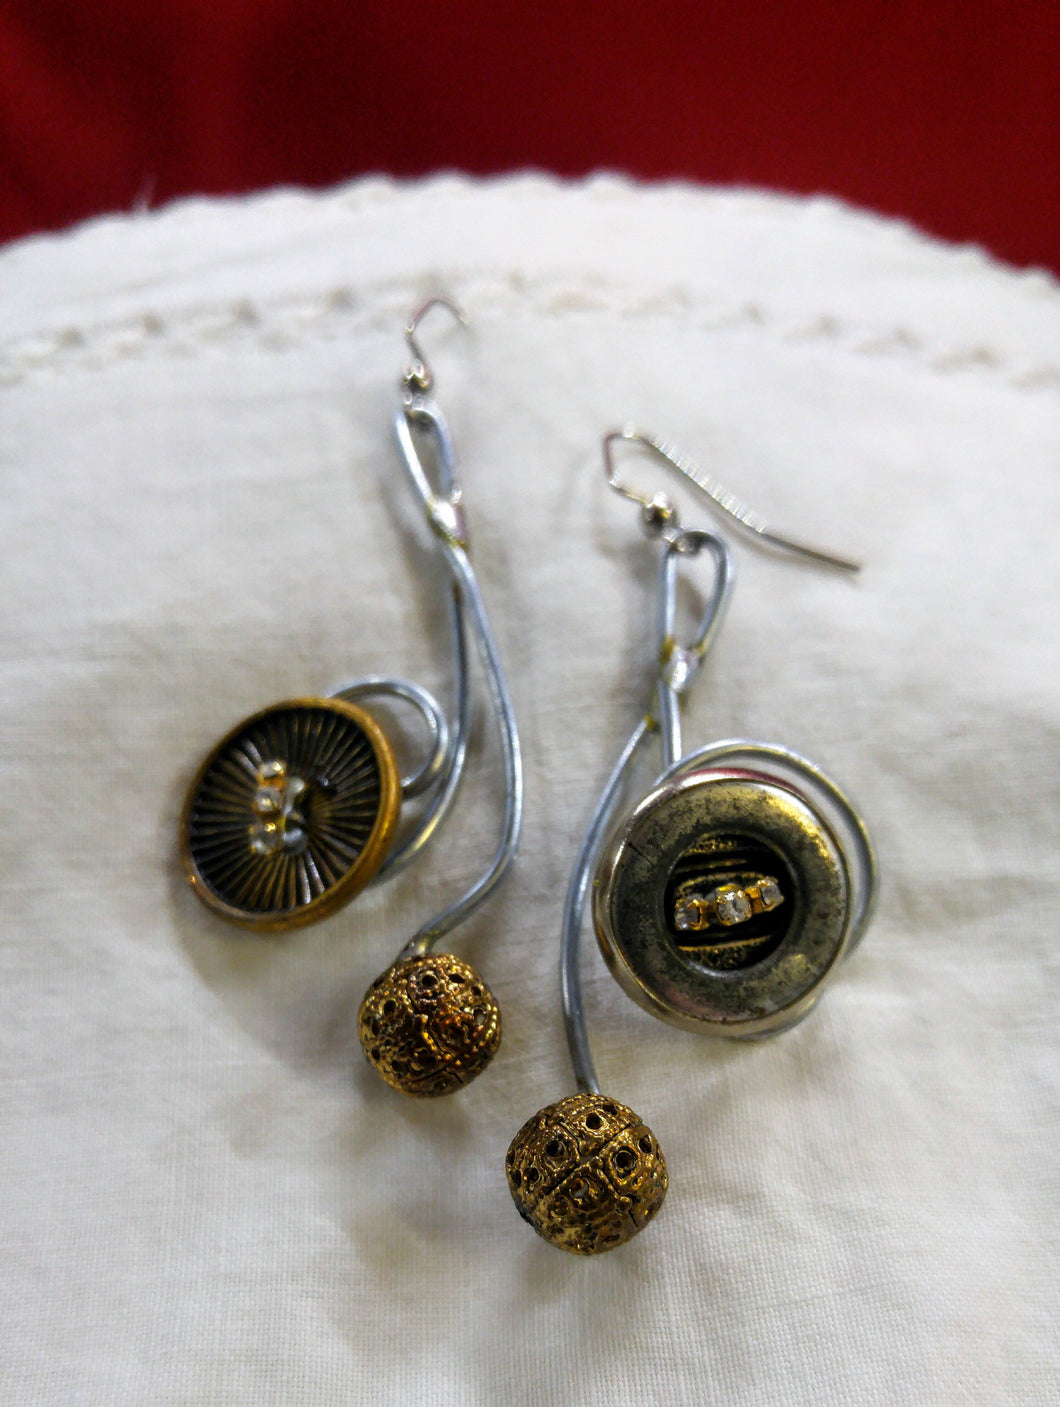 Garage Bling earrings - 2